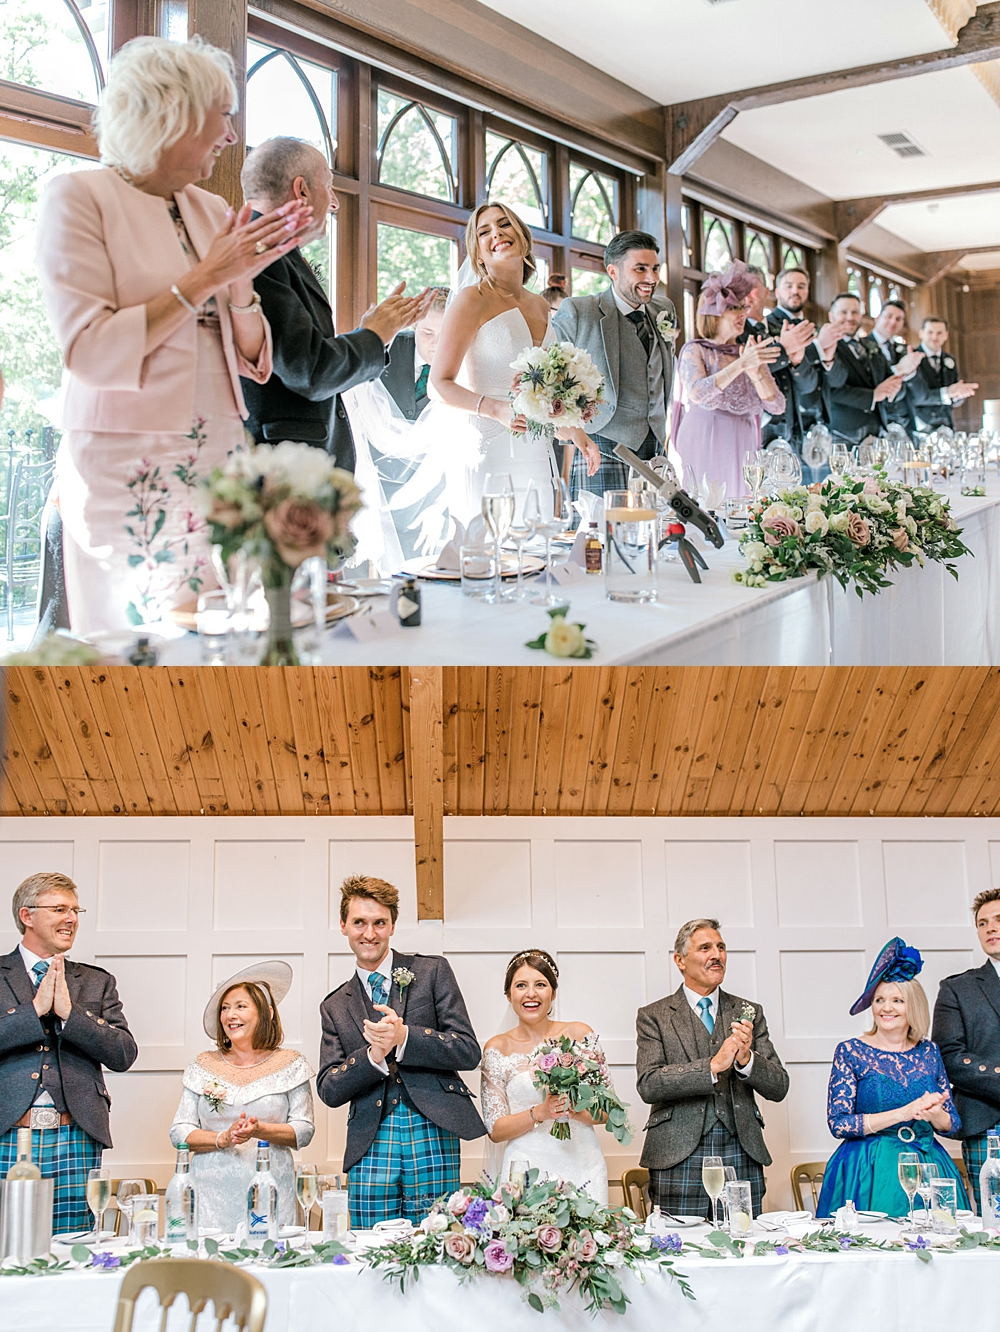 The Gibsons,crossbasket castle wedding,light and bright wedding photographers scotland,natural wedding photographers,romantic wedding photographers,soft wedding photographers,summer wedding,sunny Scottish wedding,wedding photographers glasgow,